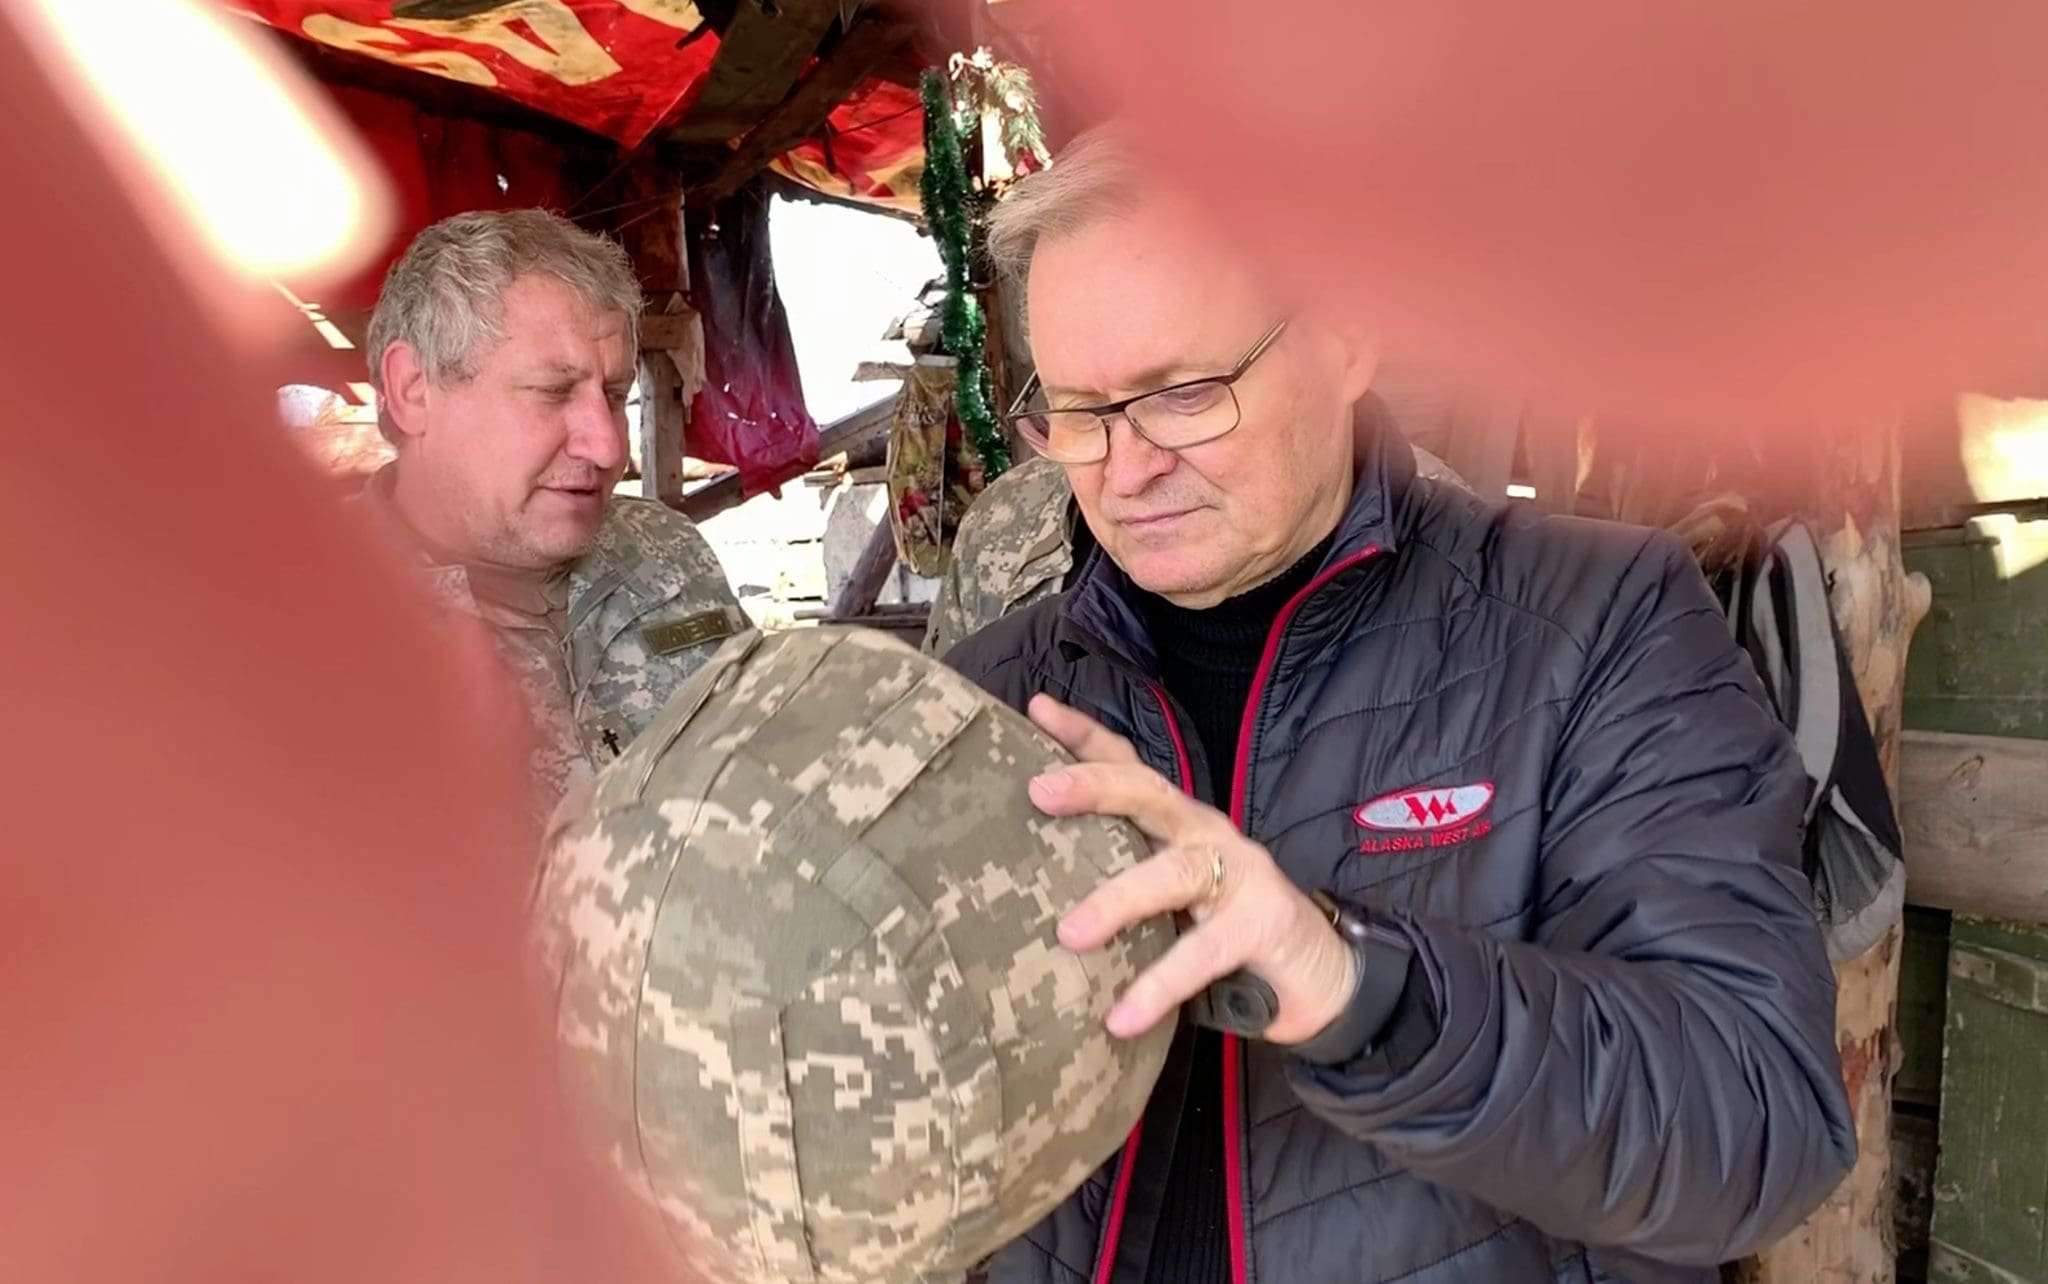 Hannu Haukka visits Ukrainian soldiers located in a forward positon within 2 hundred meters of the Russian backed rebel forces. The area is restricted and closed to the civilian population.